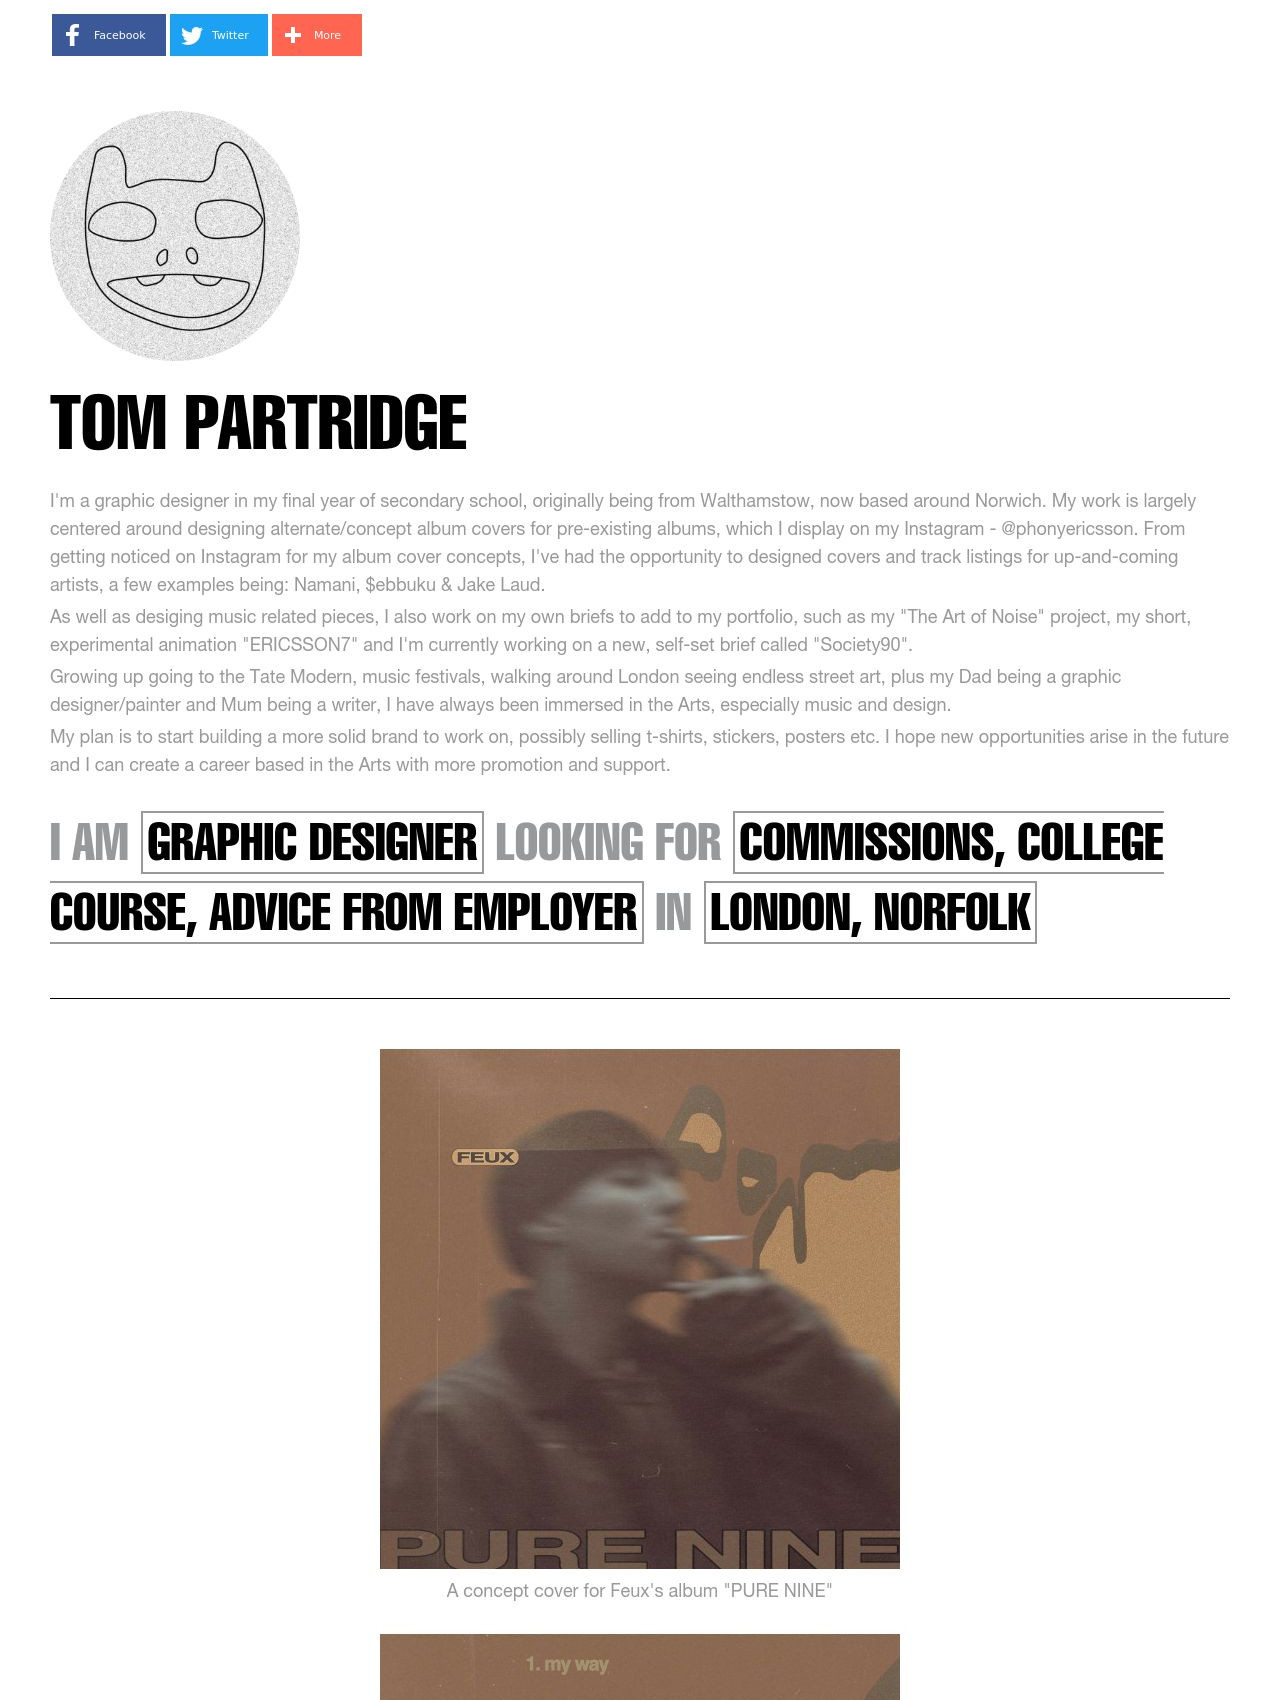 Tom Partridge